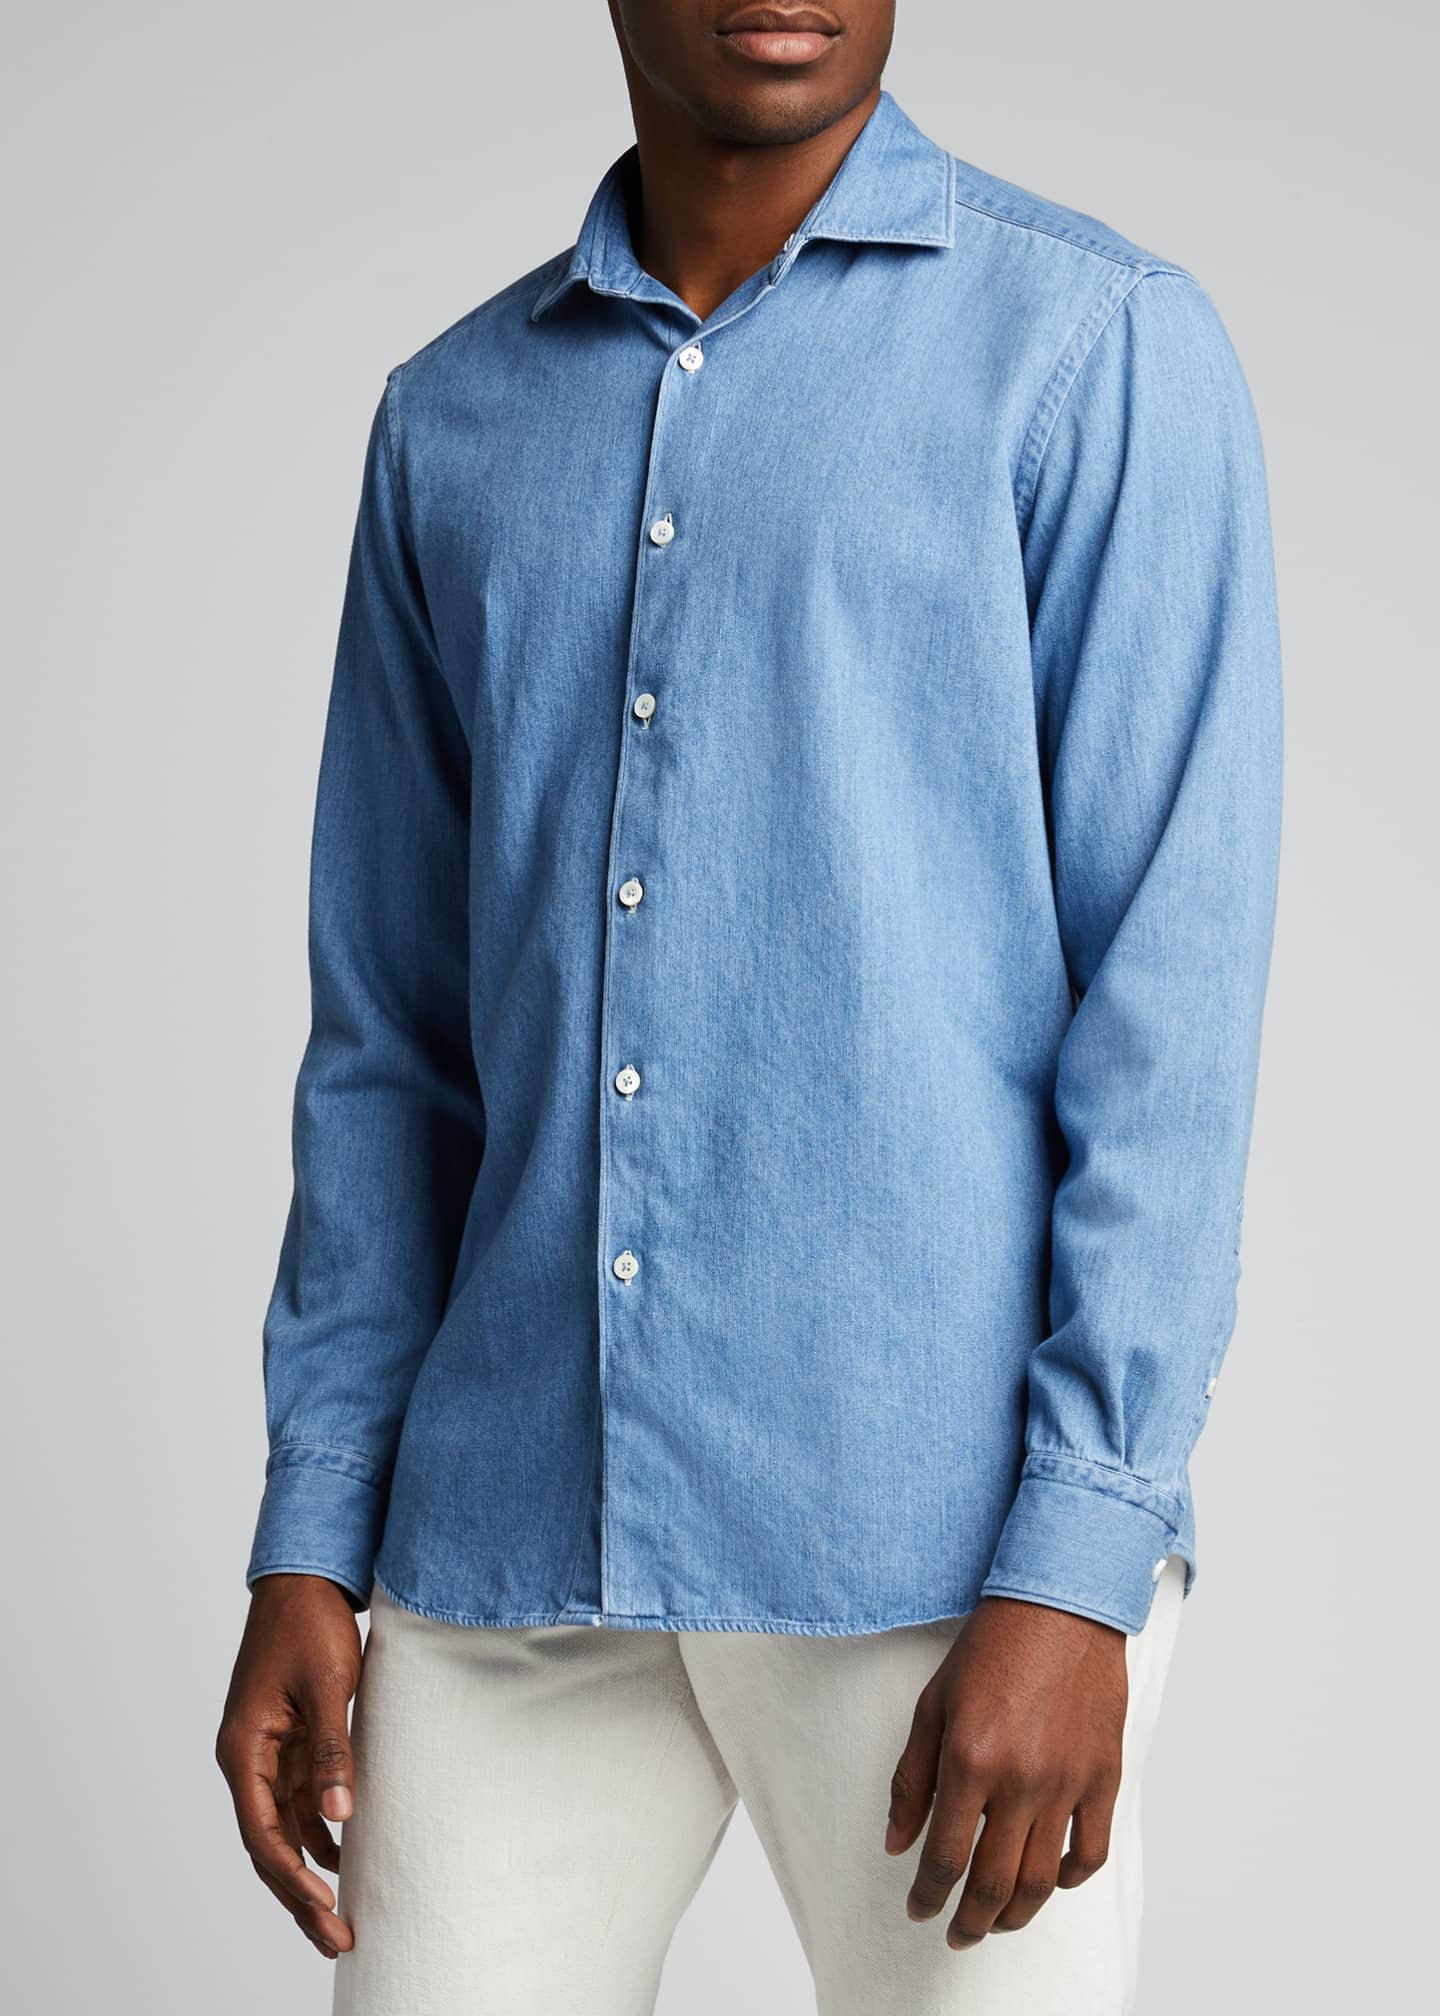 Image 3 of 5: Men's Light-Wash Denim Trim-Fit Sport Shirt